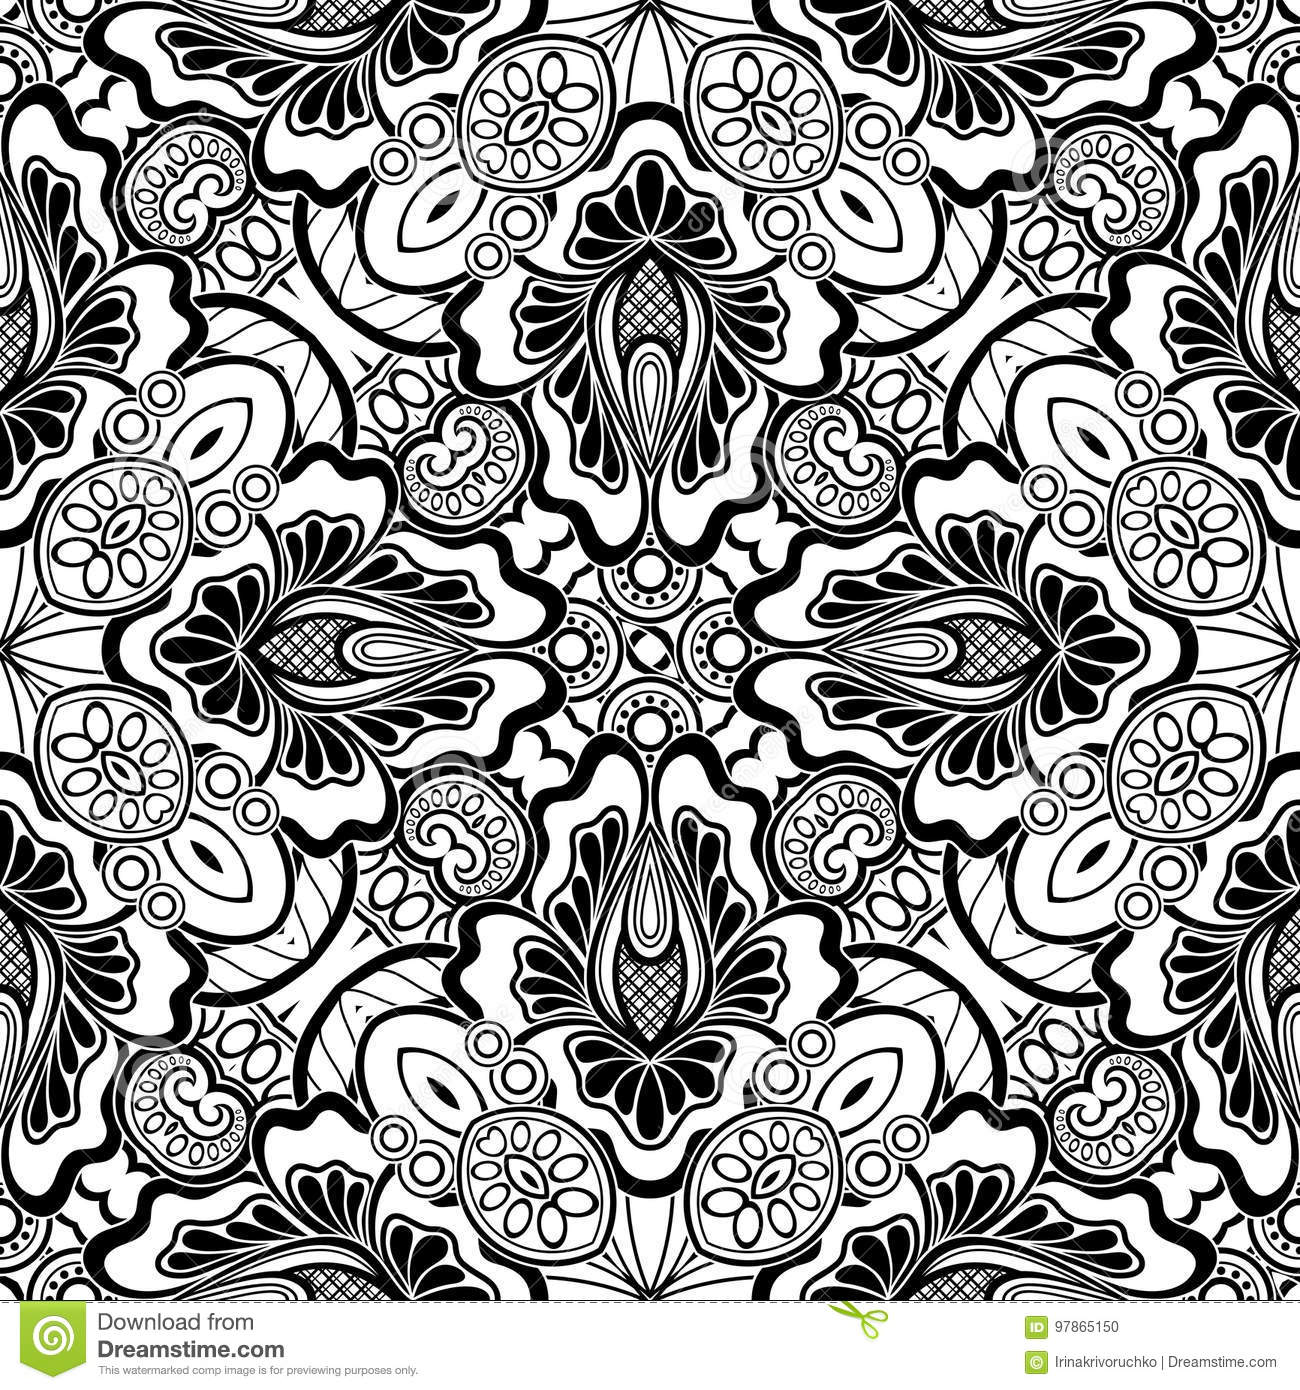 Black and white seamless pattern with mosaic floral motif